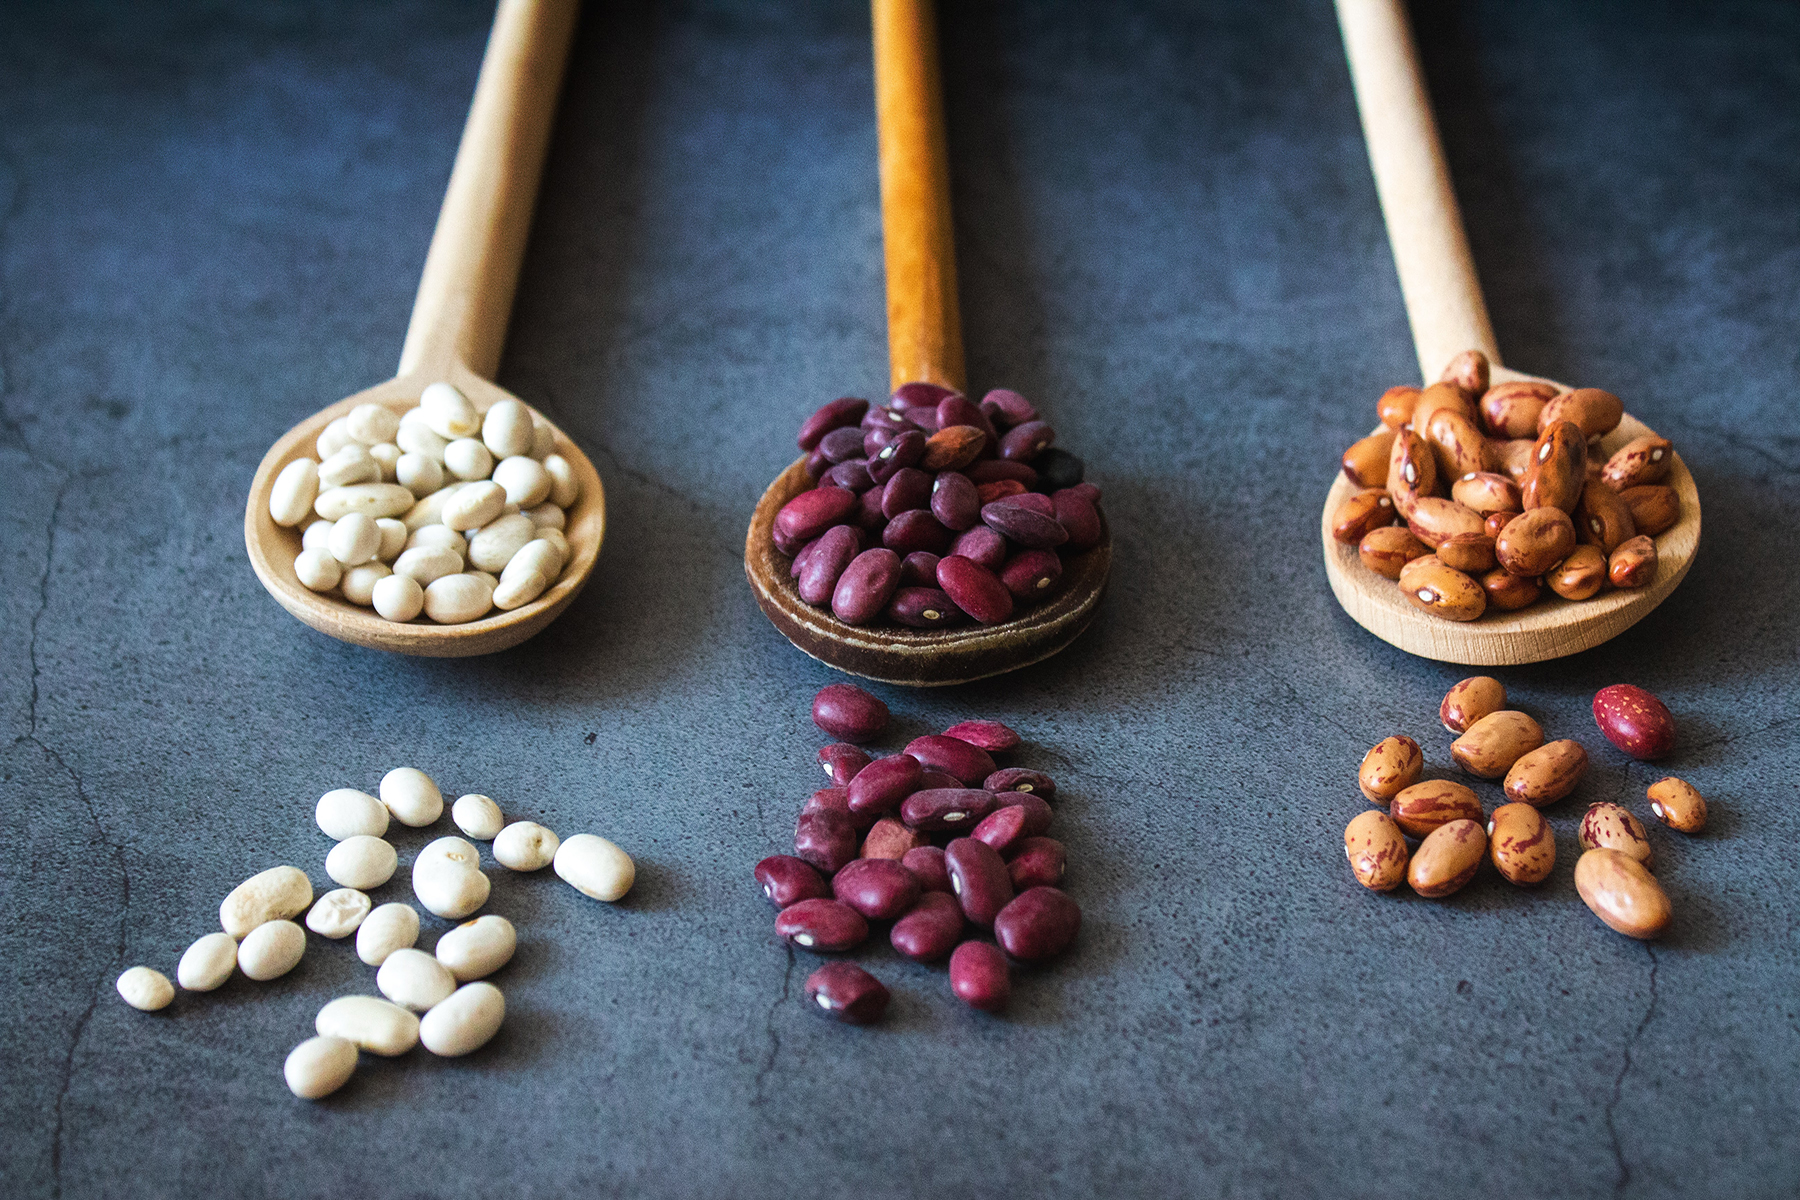 <h3>World Pulses Day, 10<sup>th</sup> February 2021</h3>